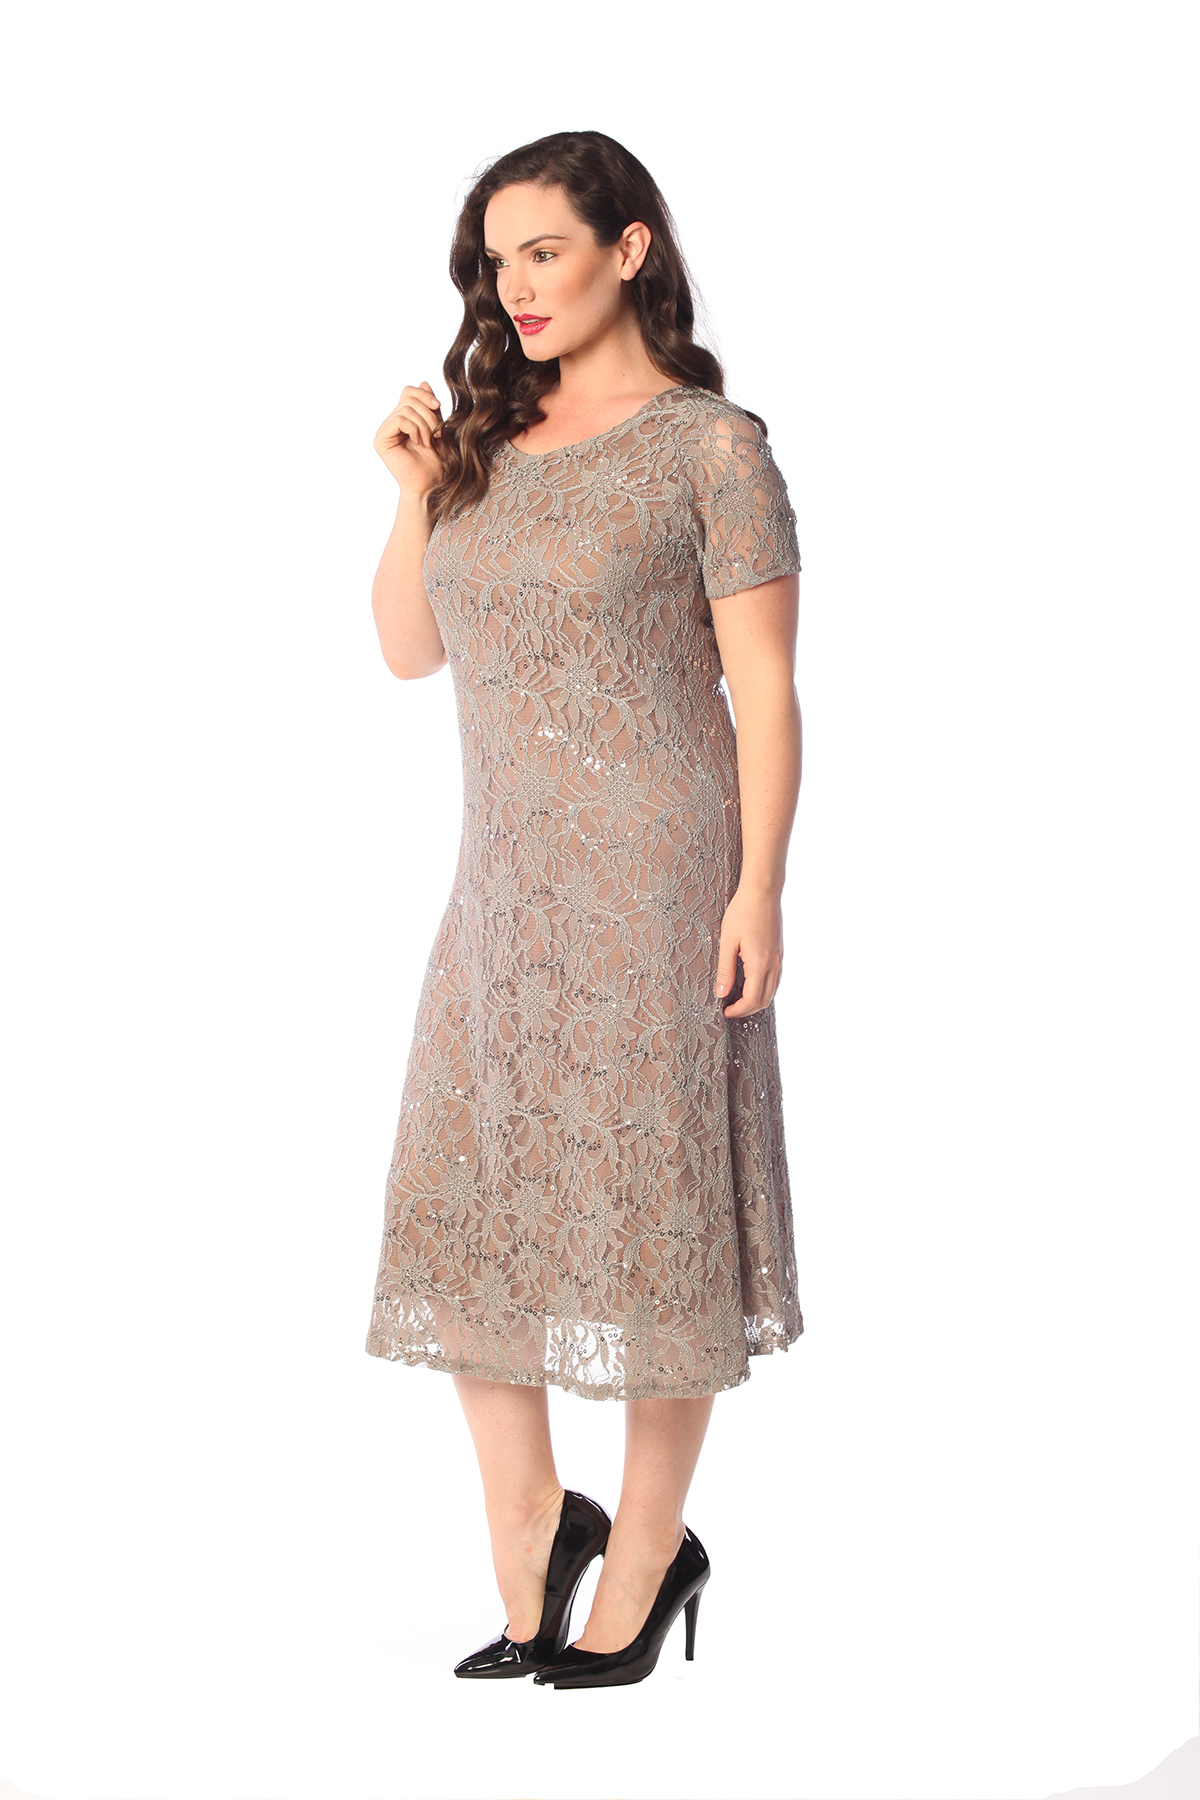 Ladies Dress Womens Plus Size Flapper Sequin Lace Floral ...